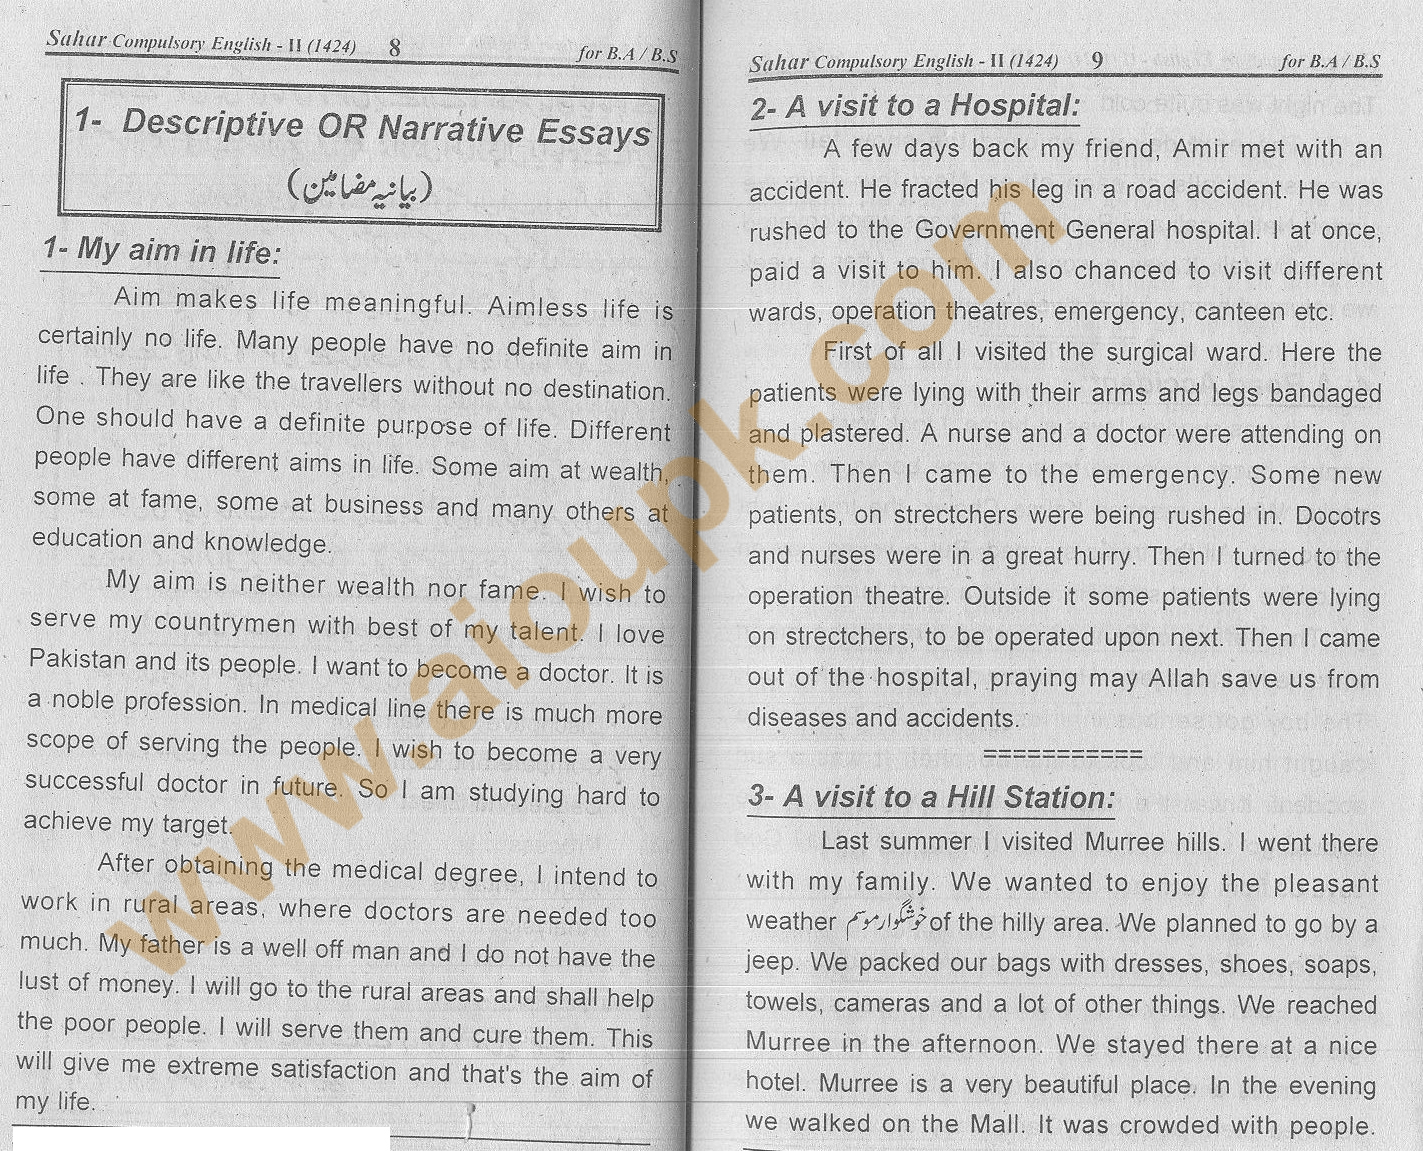 descriptive narrative essays for ba bs english ii 1424 2 english essays for ba aiou